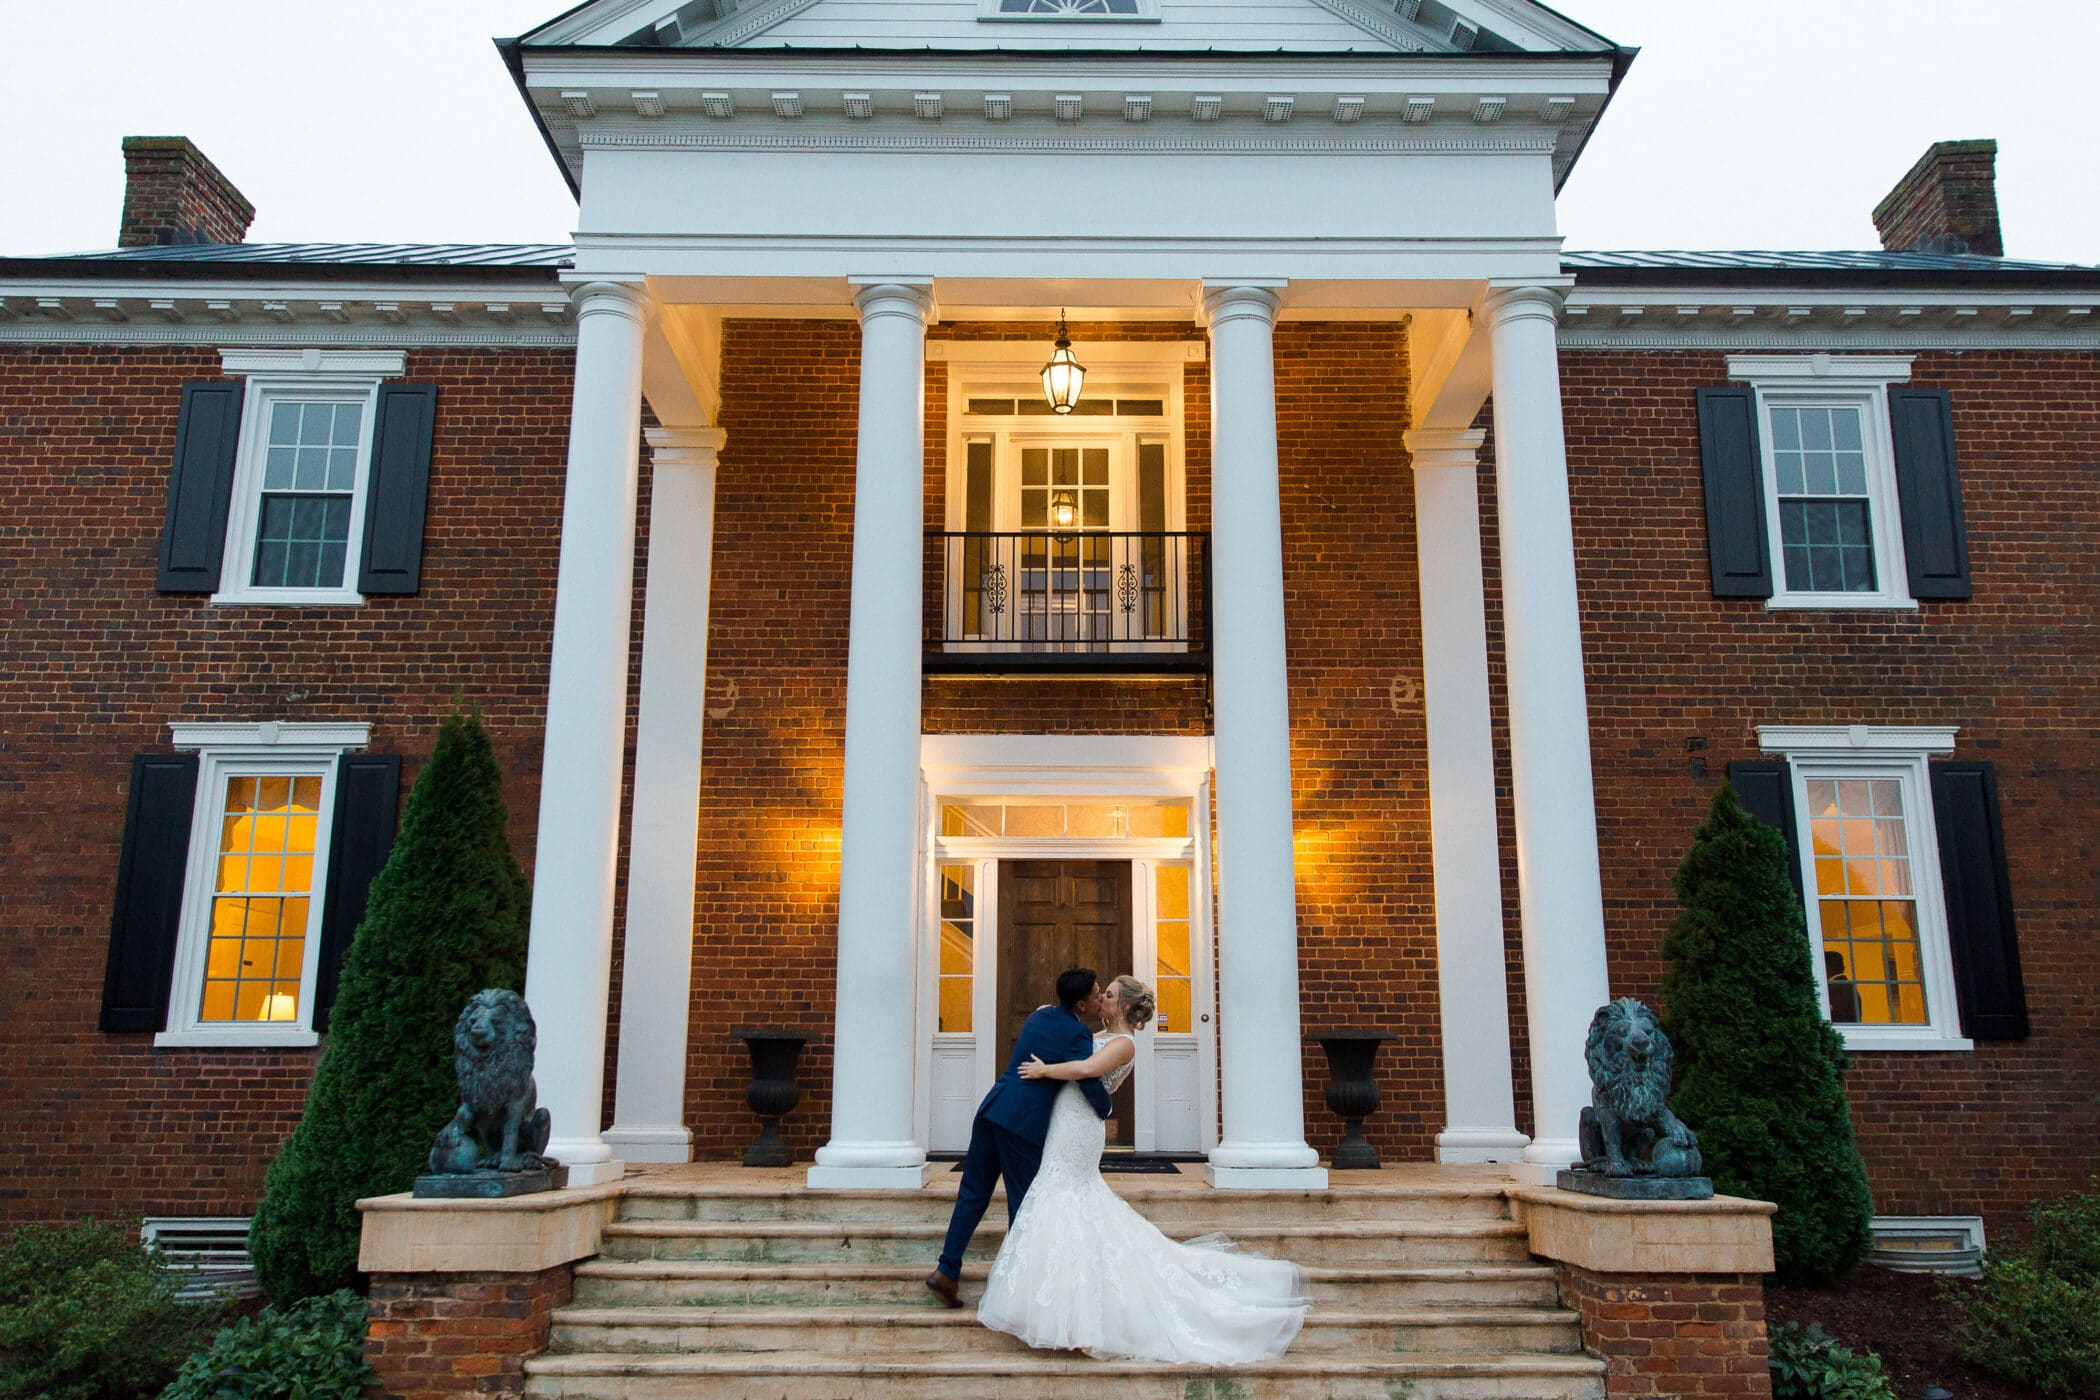 Selecting Your Virginia Wedding Venue | Entwined Events | Venue: West Manor Estate in Forest, VA | Photo Credit: Lauren Paige Photography